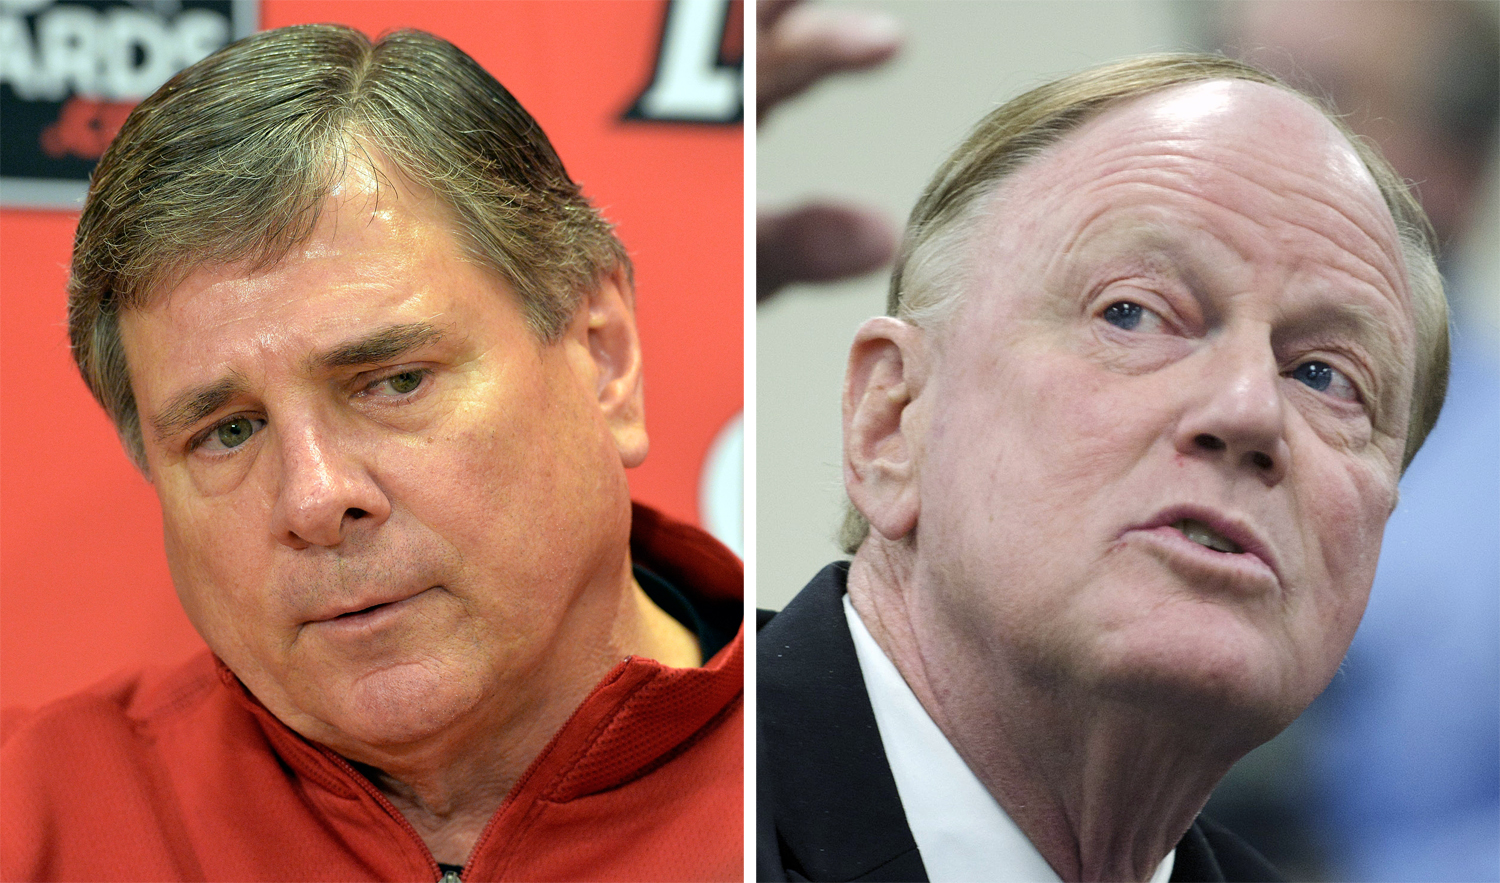 FILE - At left, in a Jan. 5, 2013, file photo, University of Louisville Athletic Director Tom Jurich listens to a reporters question during a press conference in Louisville, Ky. At right, in a Feb. 2, 2012, file photo, University of Louisville President D